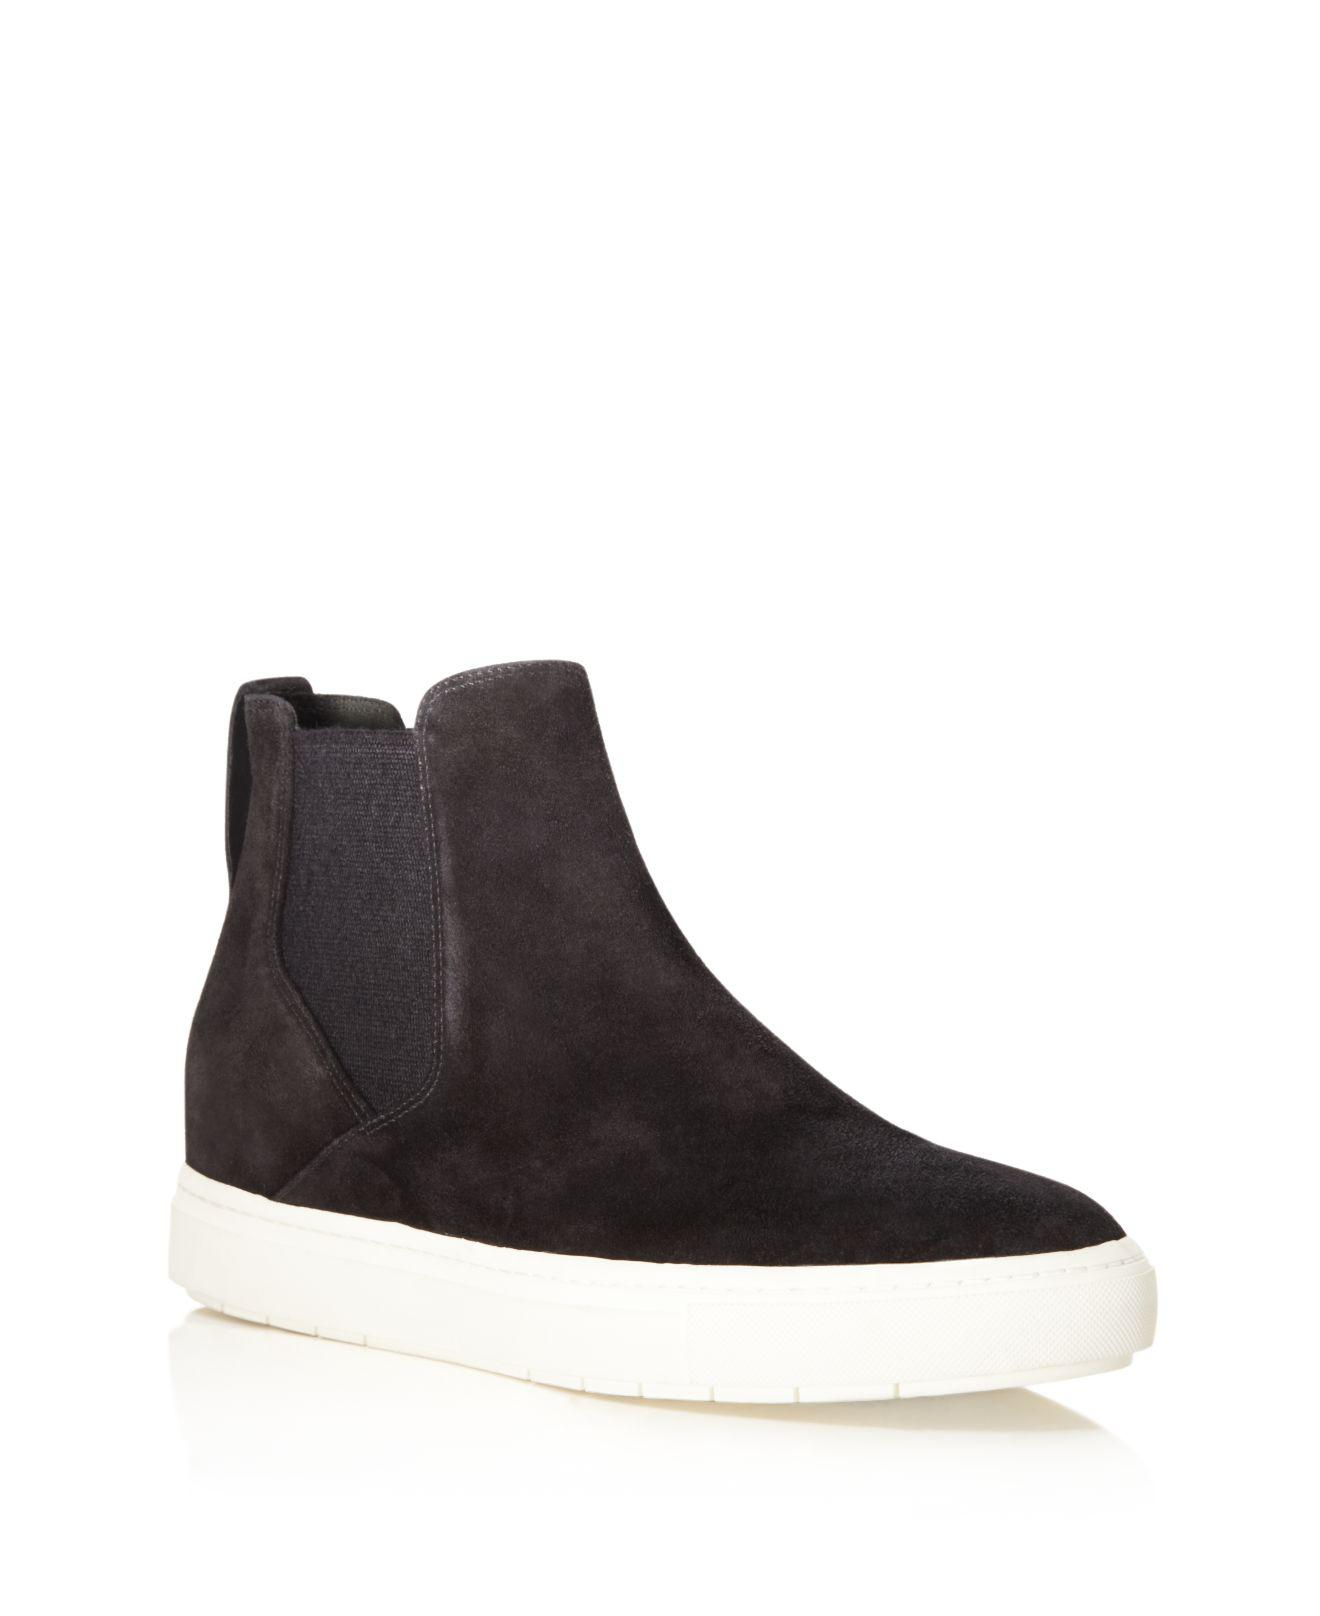 a893ea136e70 Lyst - Vince Newlyn High Top Slip On Sneakers in Black for Men